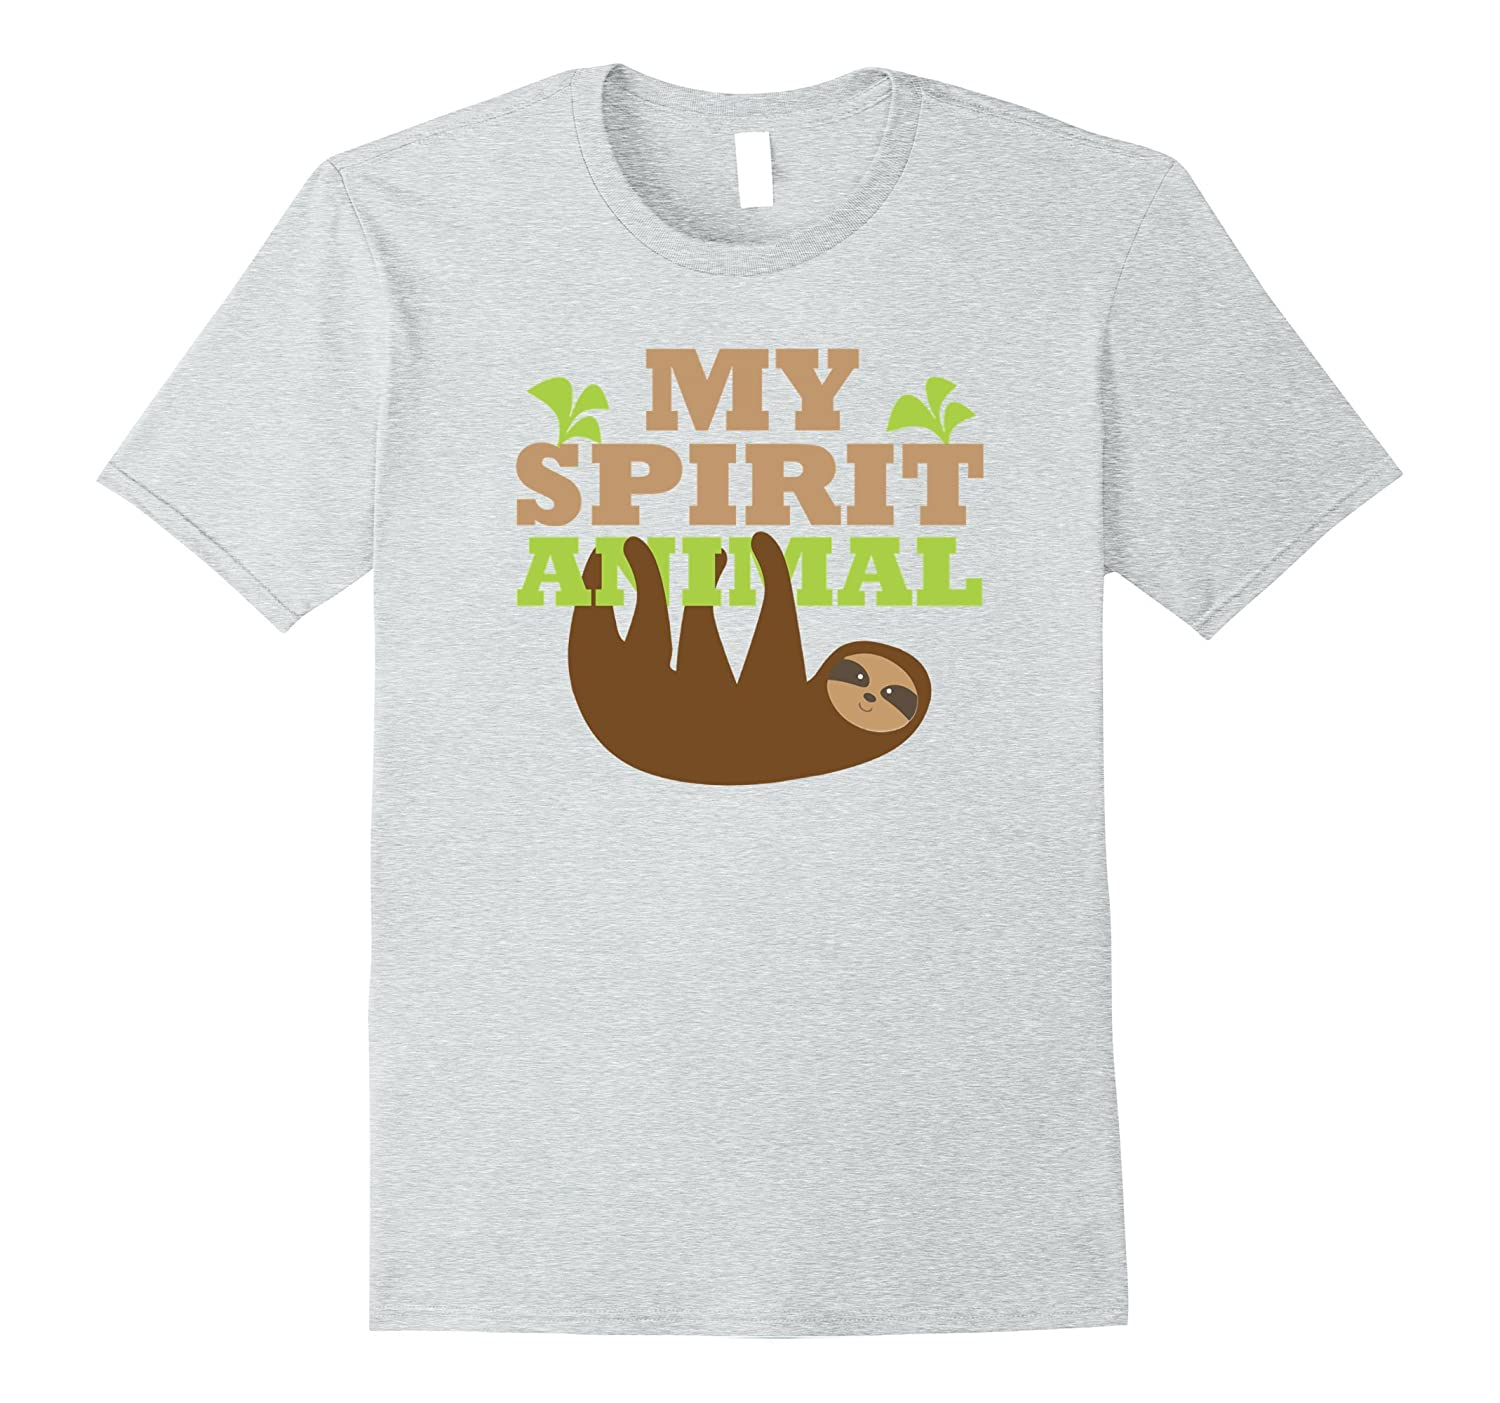 7253483dd My Spirit Animal is a Sloth T Shirt Cute Hanging Sloths Tee-CL ...